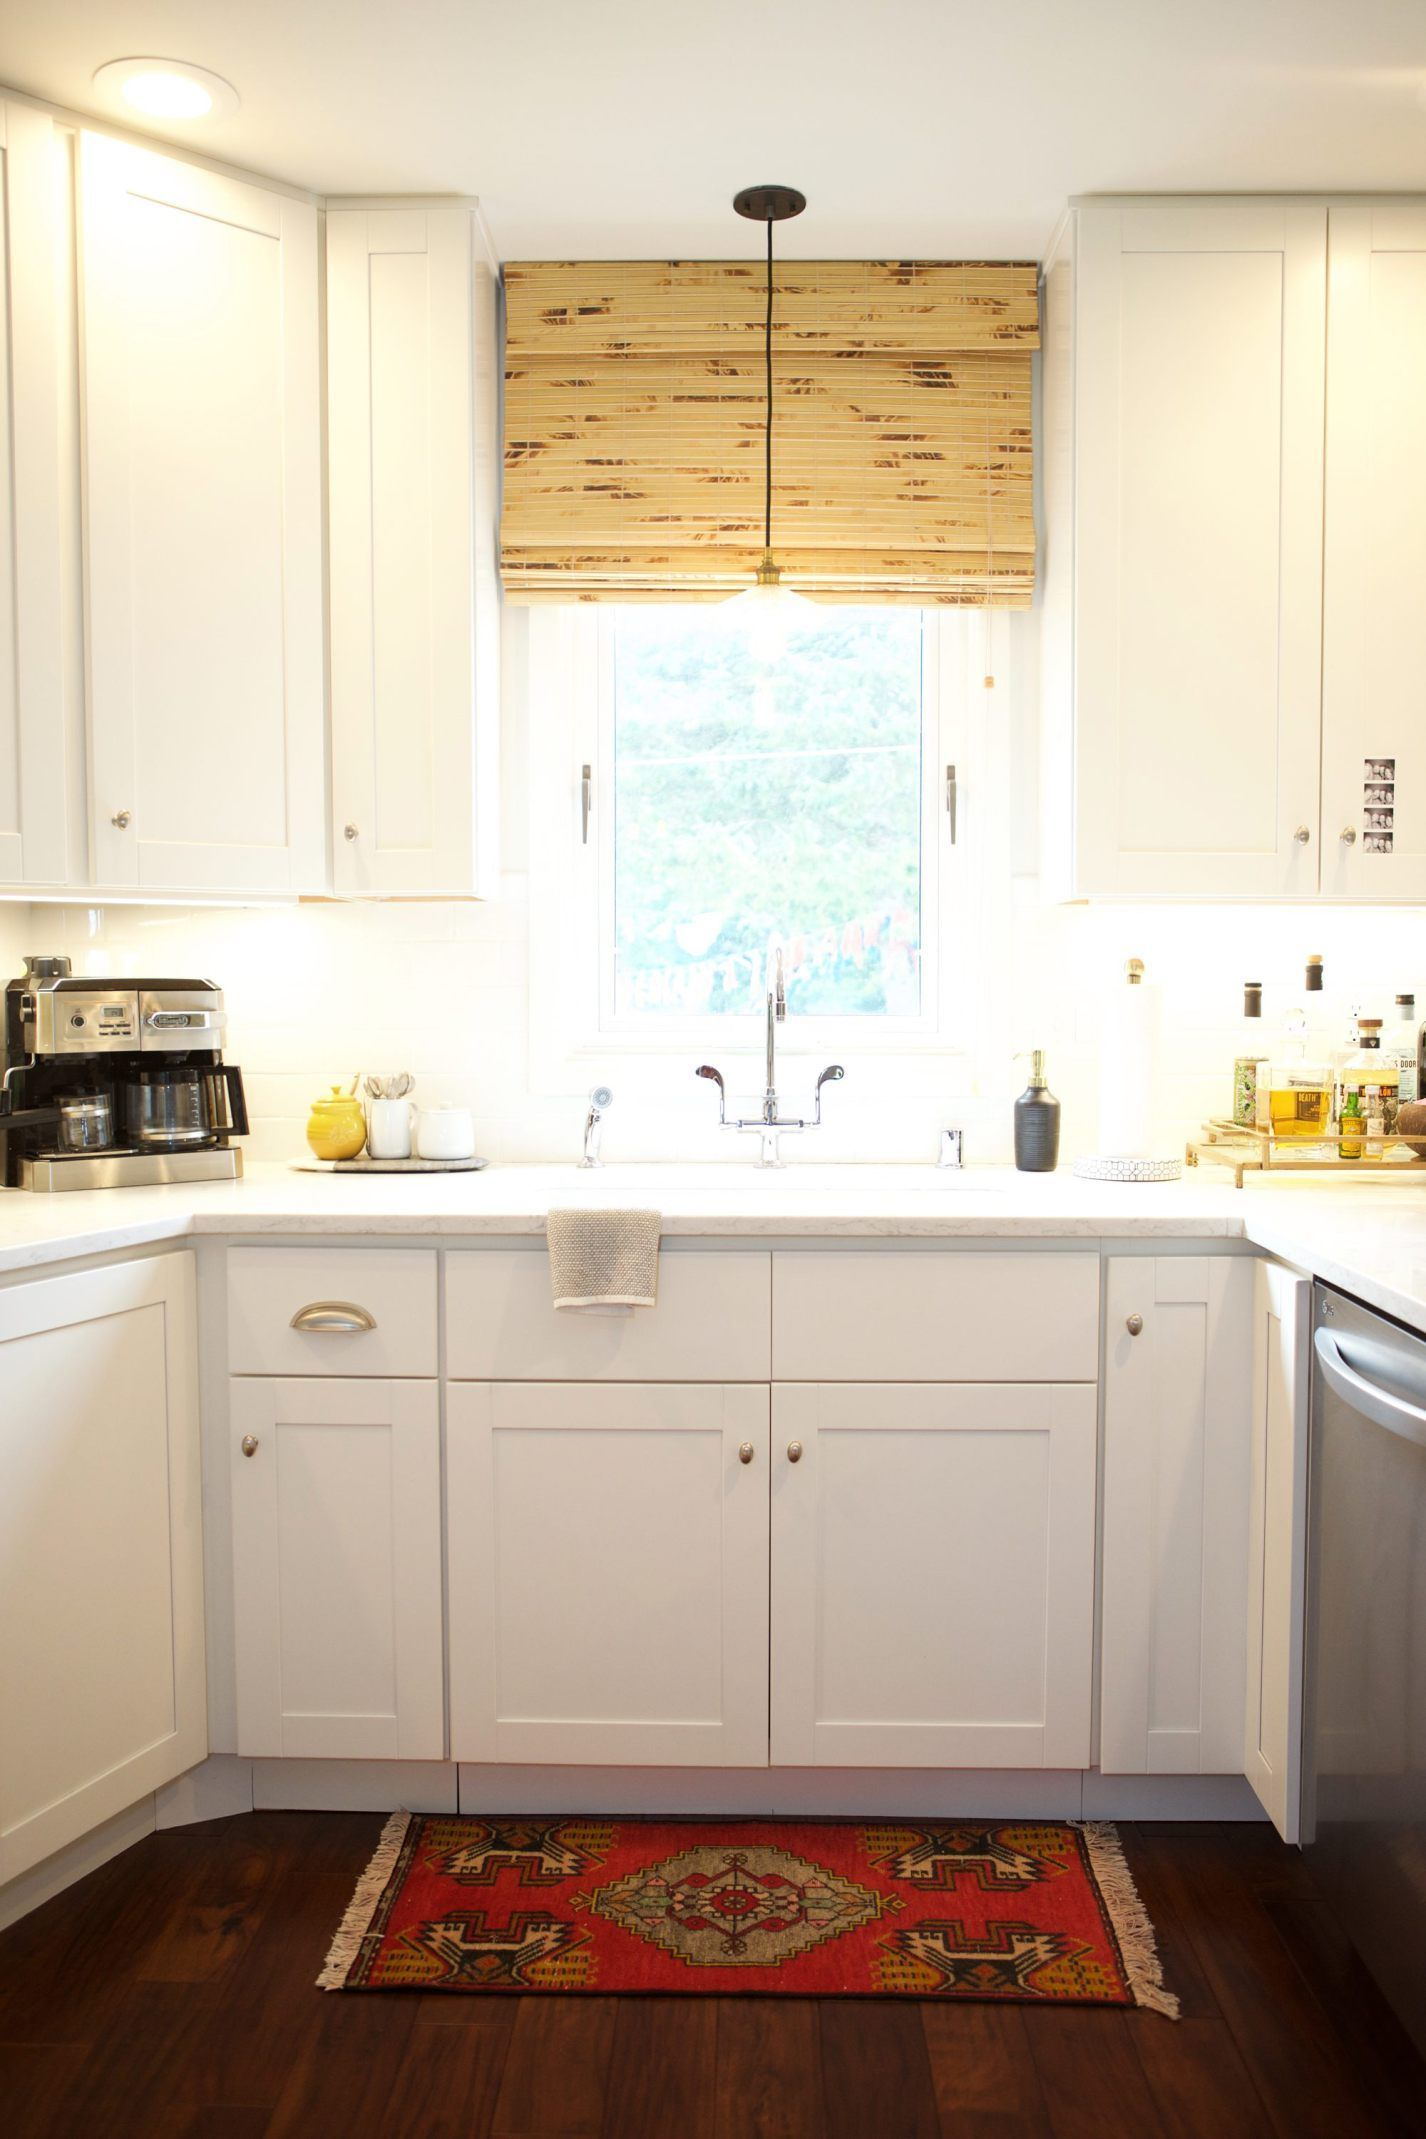 Kitchen sink without window  kitchen sink with turkish rug and bamboo shade on window